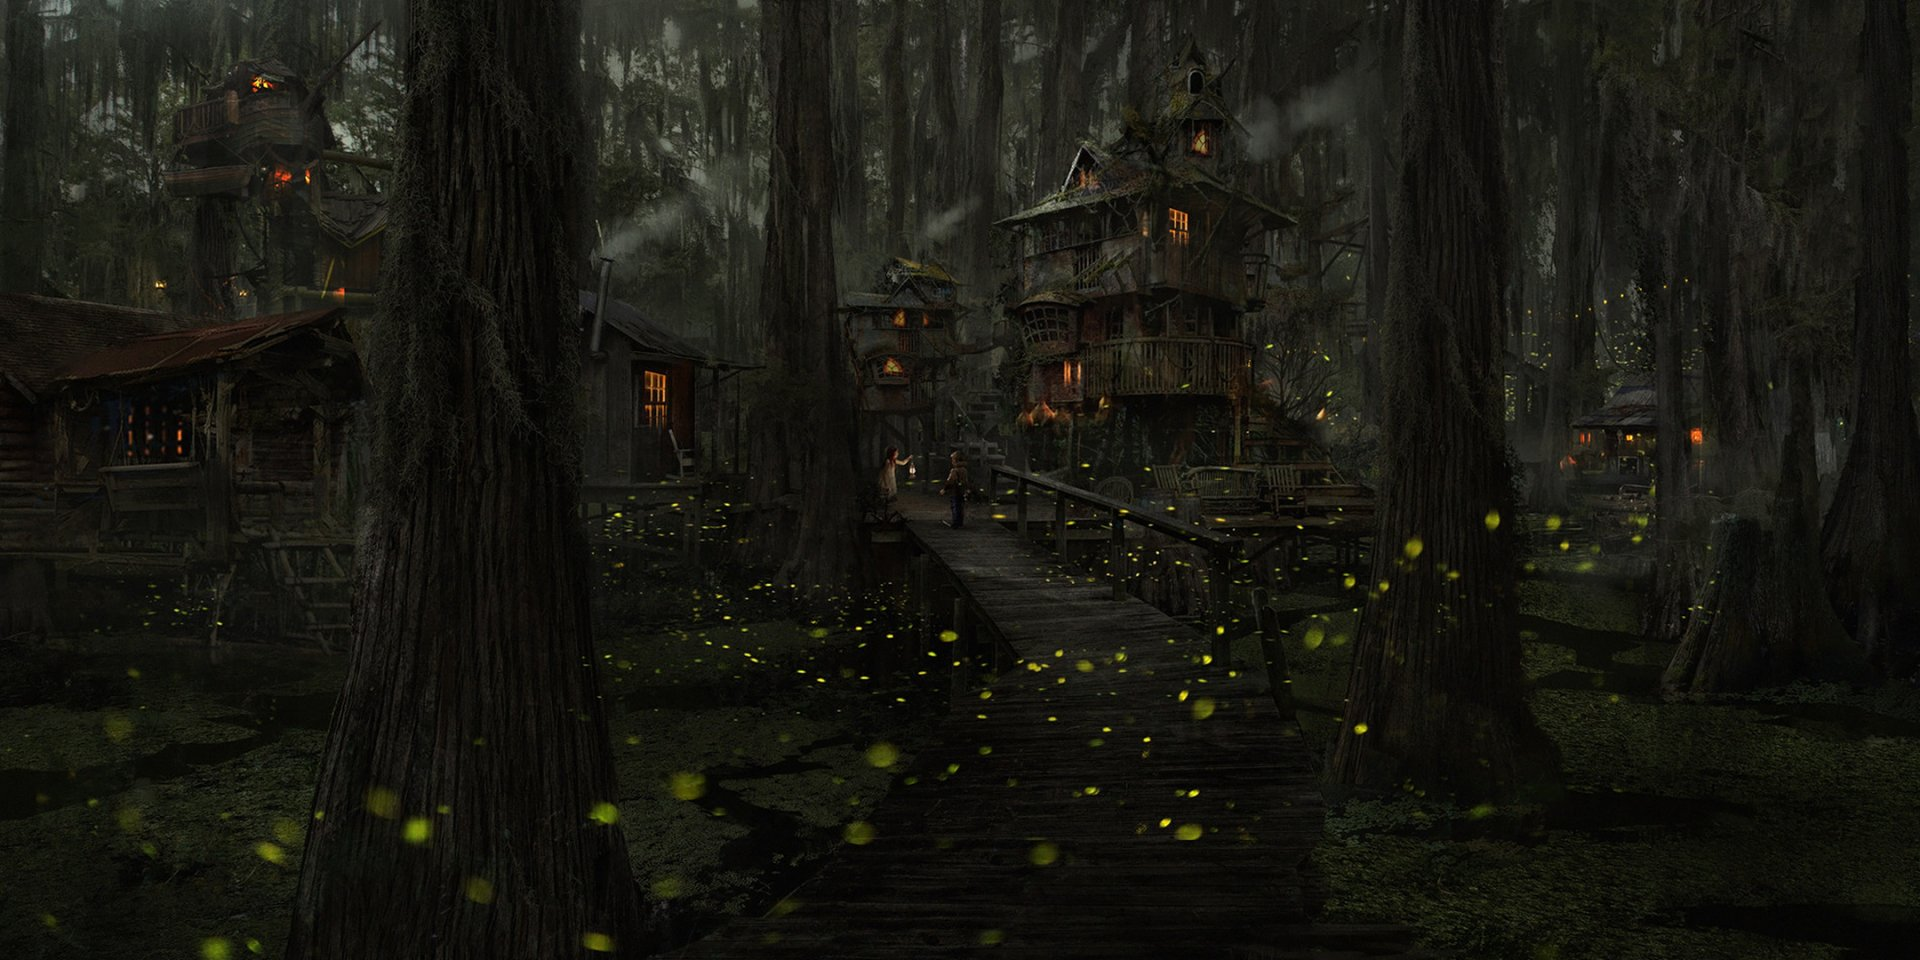 Fantasy - Forest  Building Firefly Tree Child Wallpaper